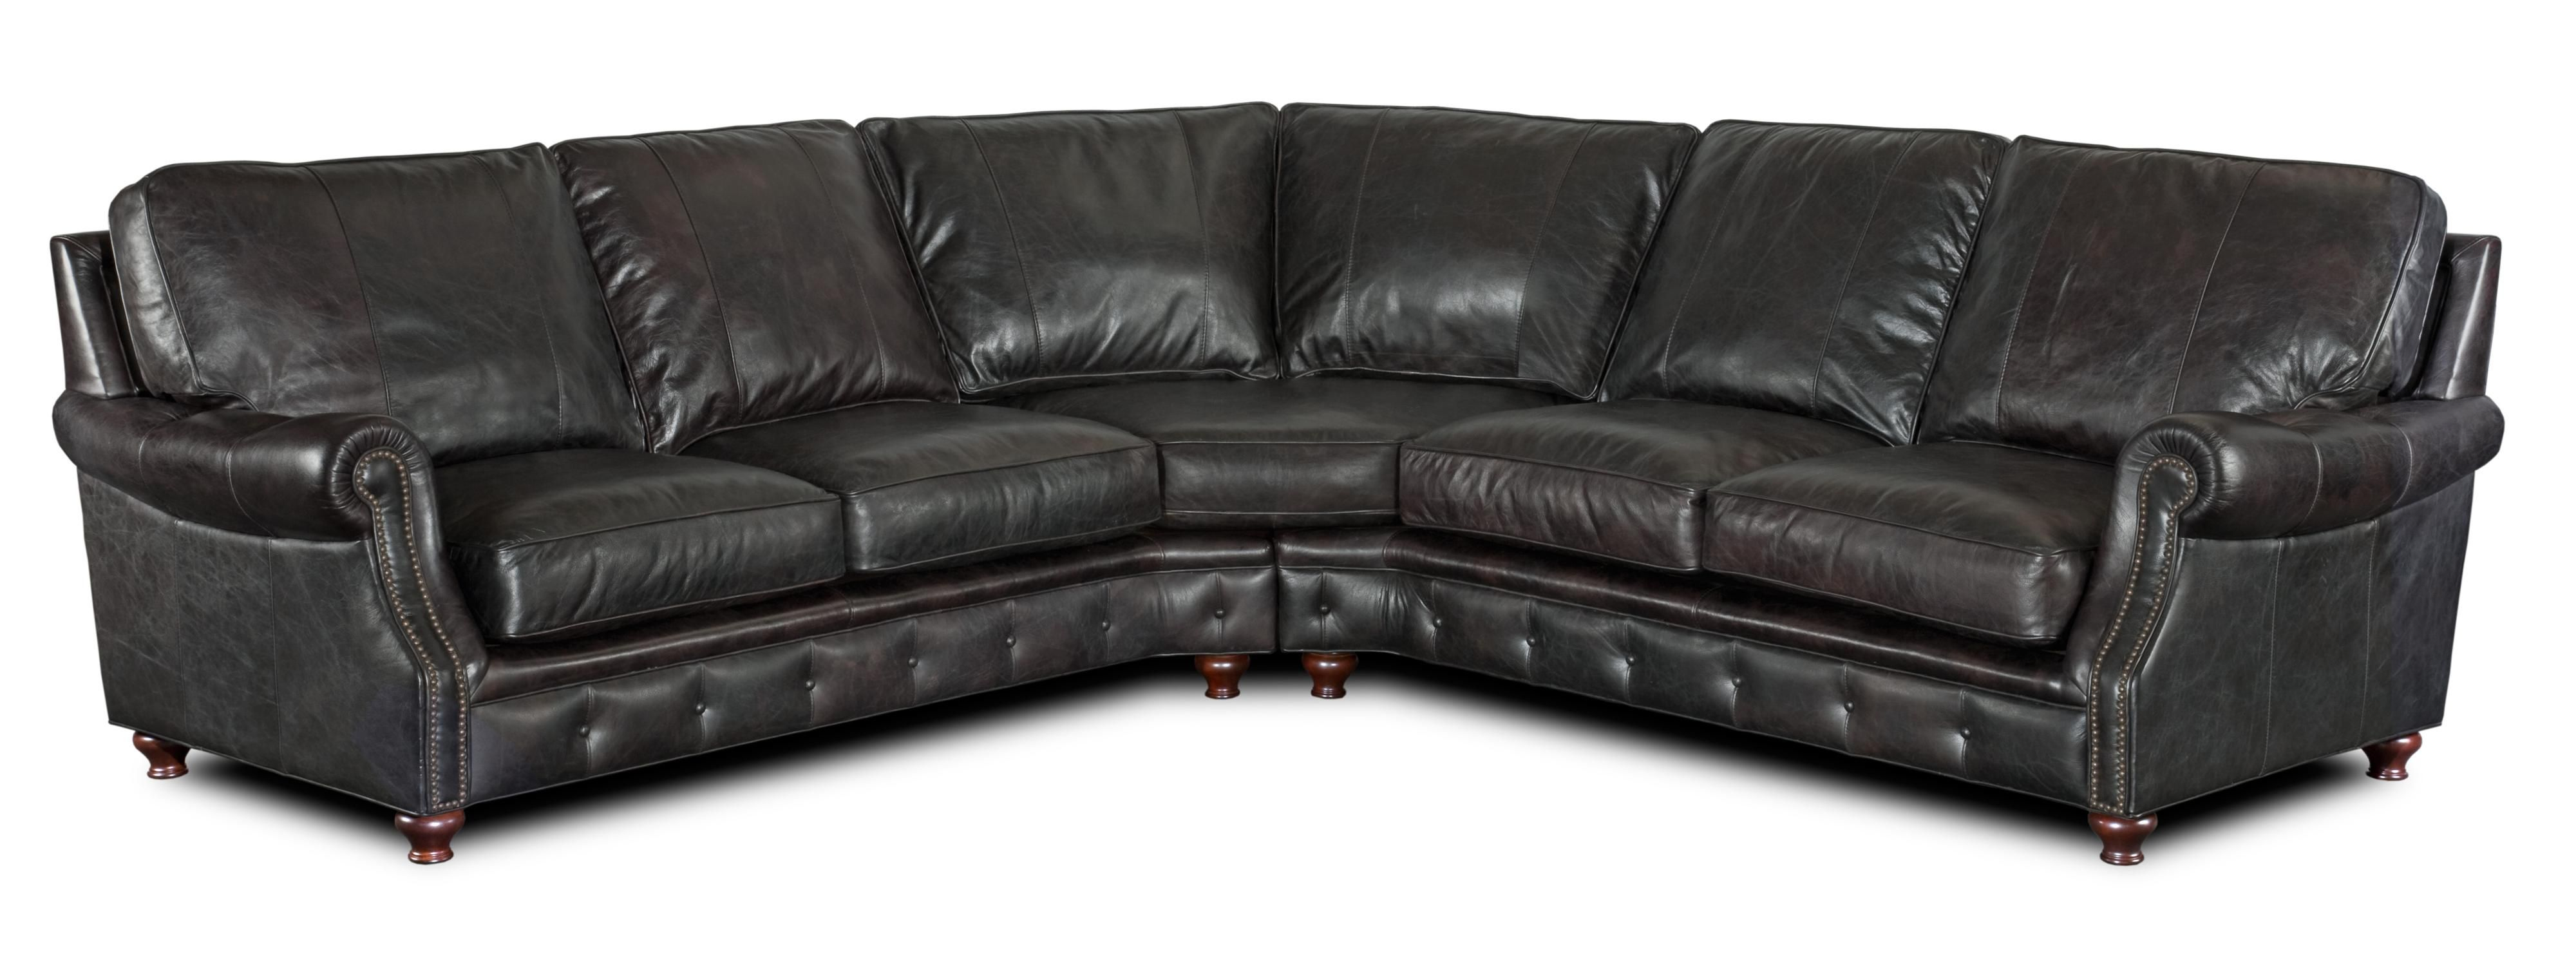 sofaore knoxville tn white rattan 2 seater sofa leather sofas review home co